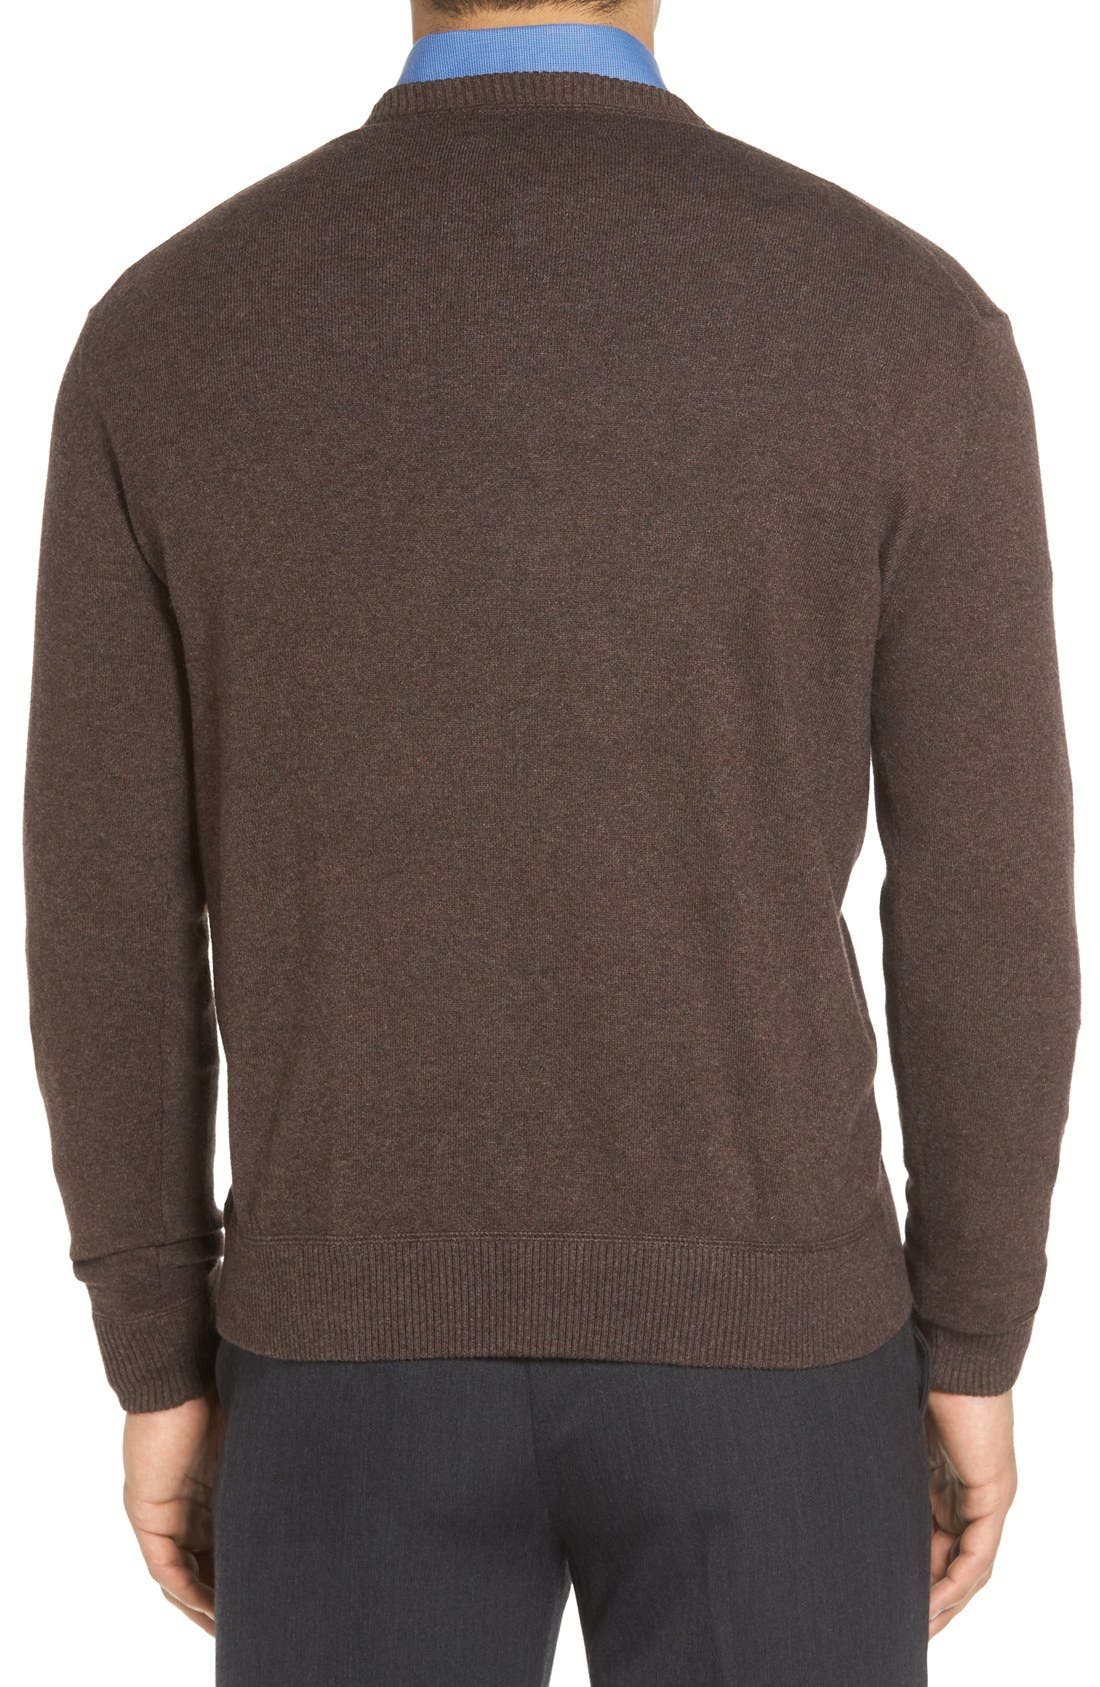 'Jersey Sport' Cotton Blend Crewneck Sweater,                             Alternate thumbnail 2, color,                             Coffee